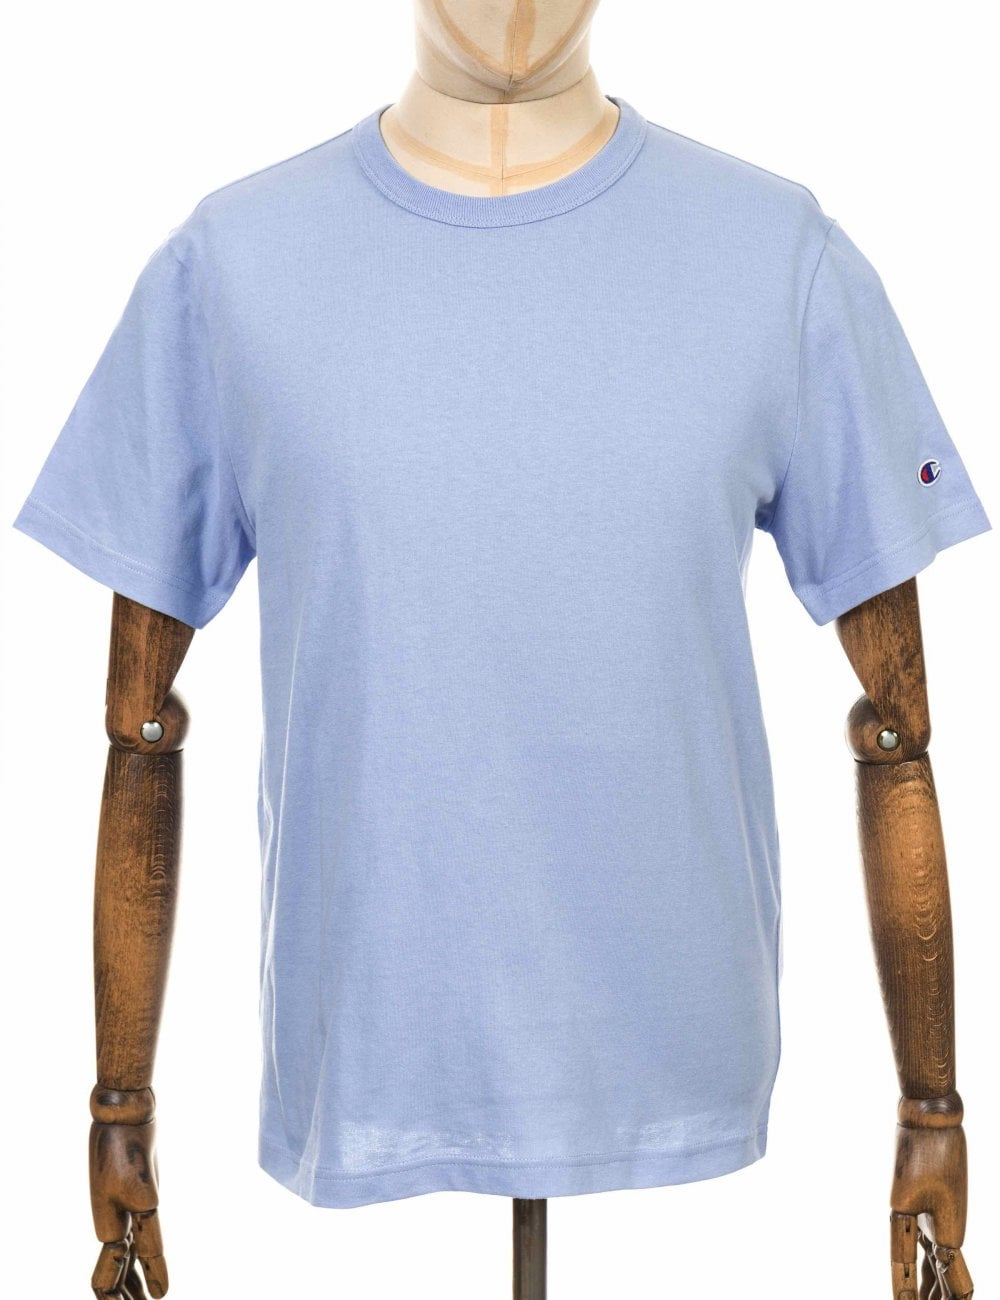 3b5170d1fc69 Champion Reverse Weave Crewneck Tee - LLU Light Blue - T Shirts from ...